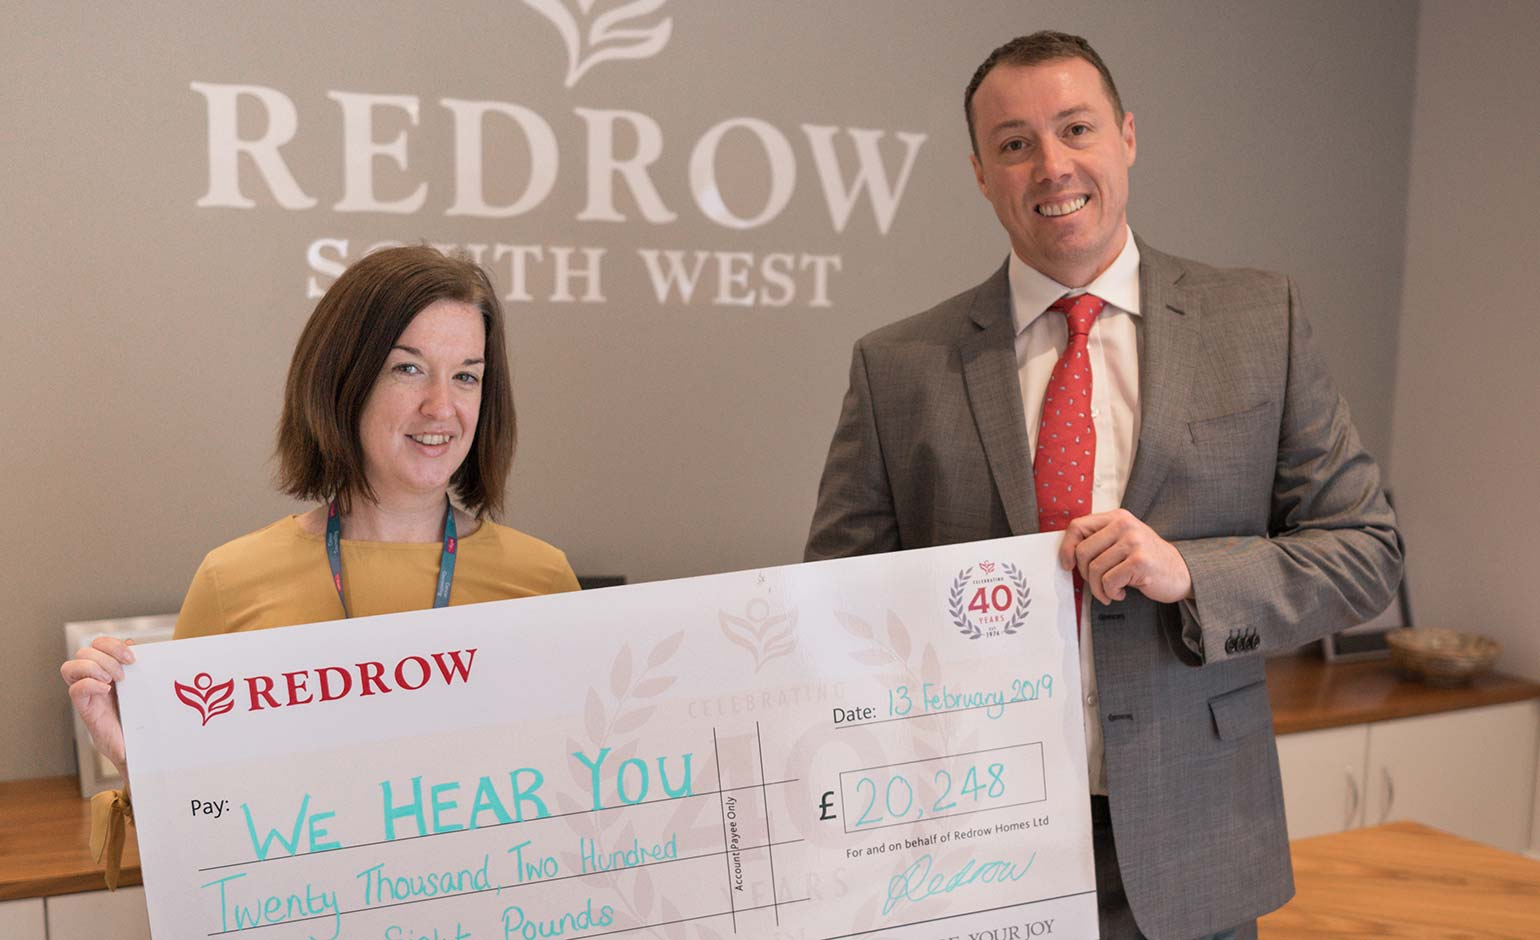 Over £20k donated to We Hear You charity by housebuilder Redrow Homes